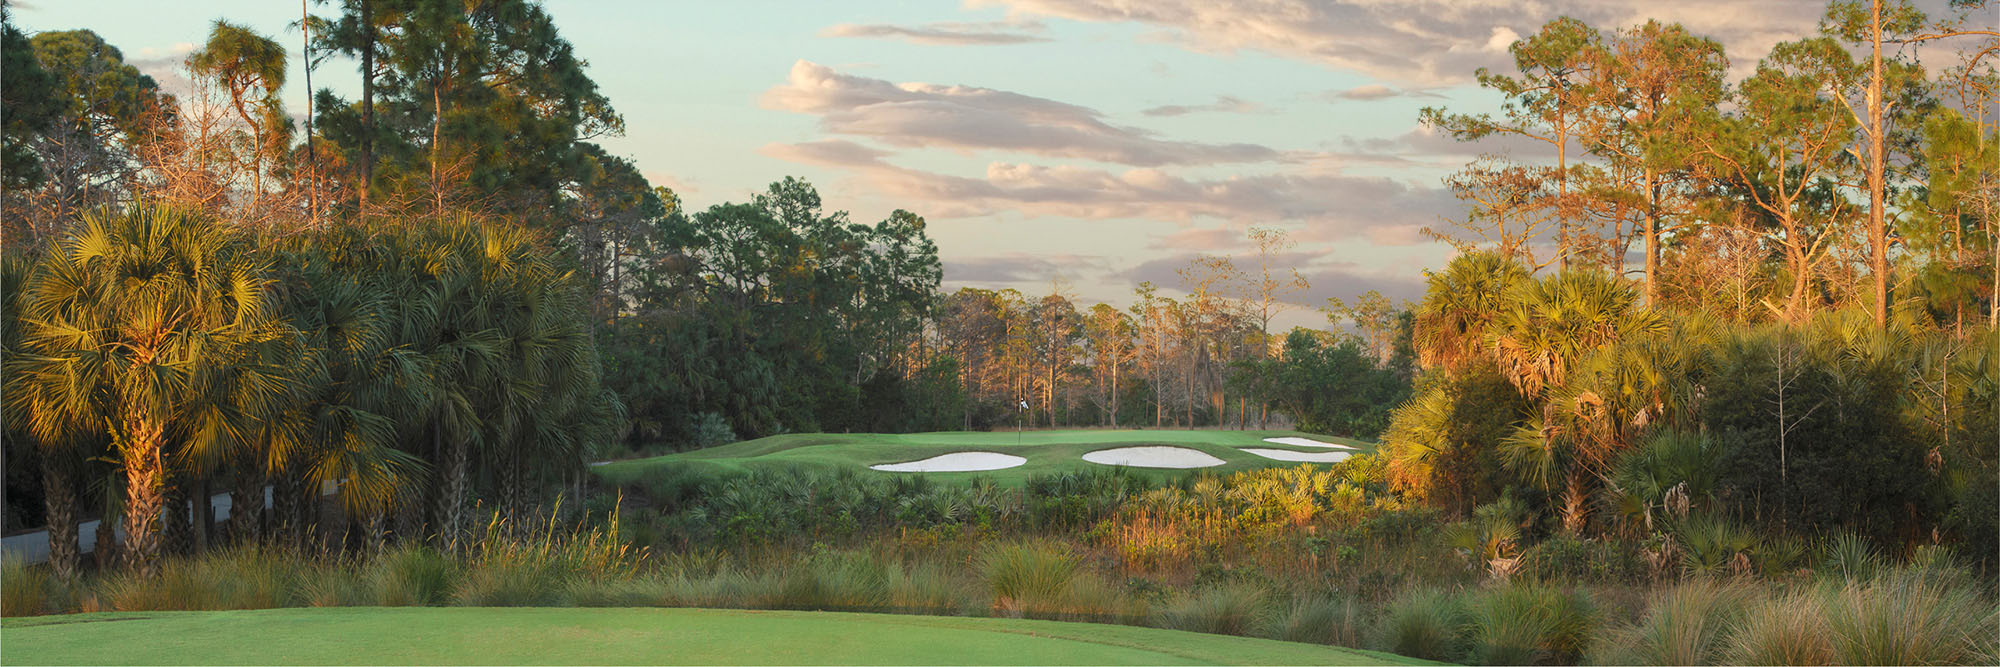 Golf Course Image - Mirasol Sunset No. 16